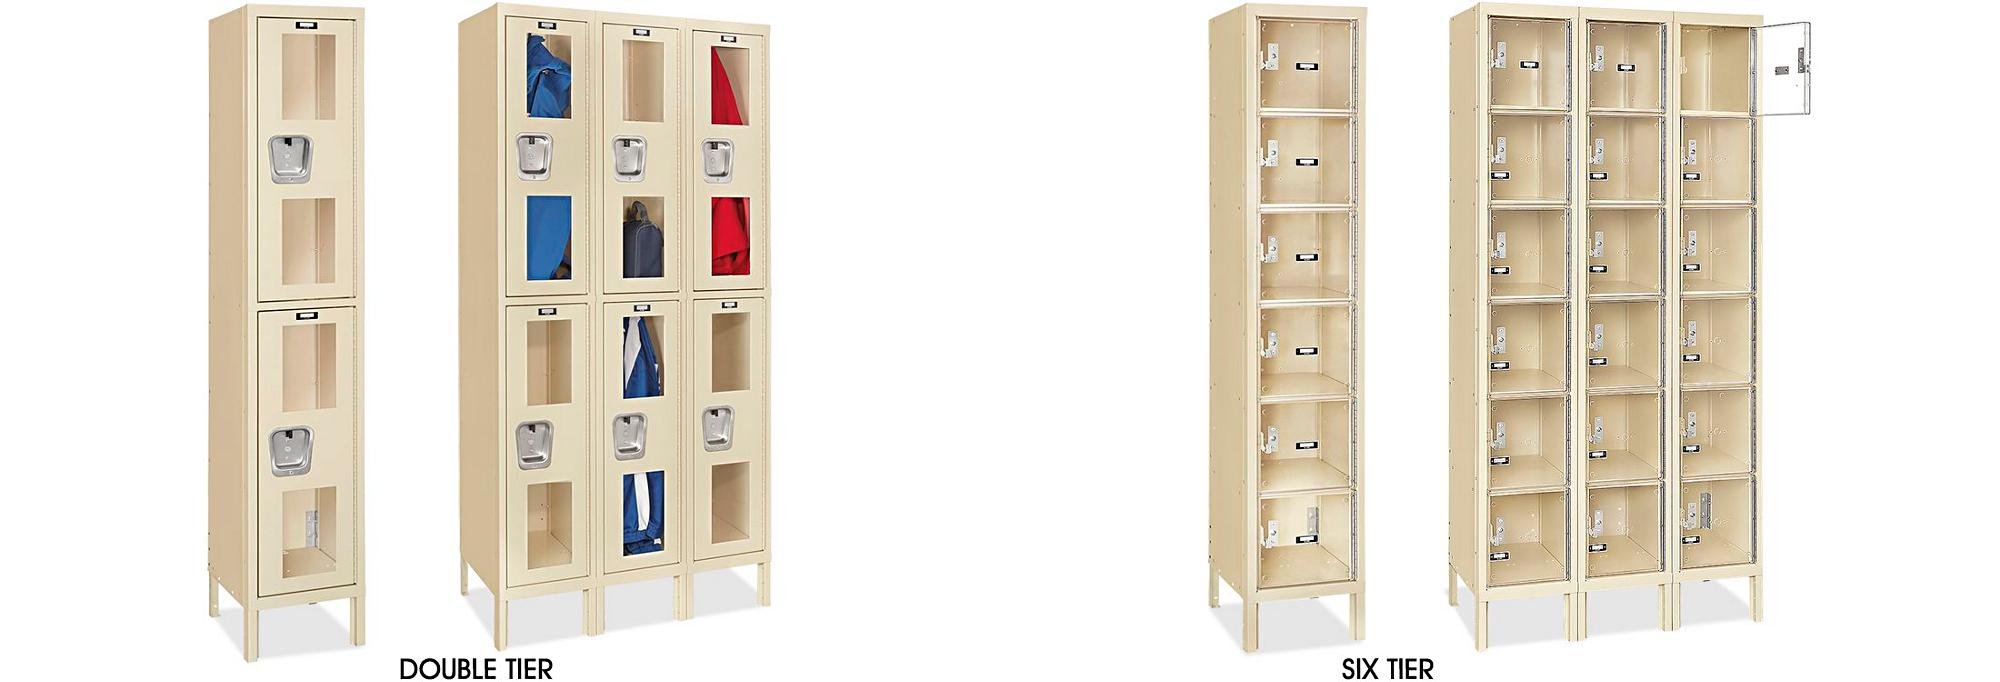 Clear-View Lockers